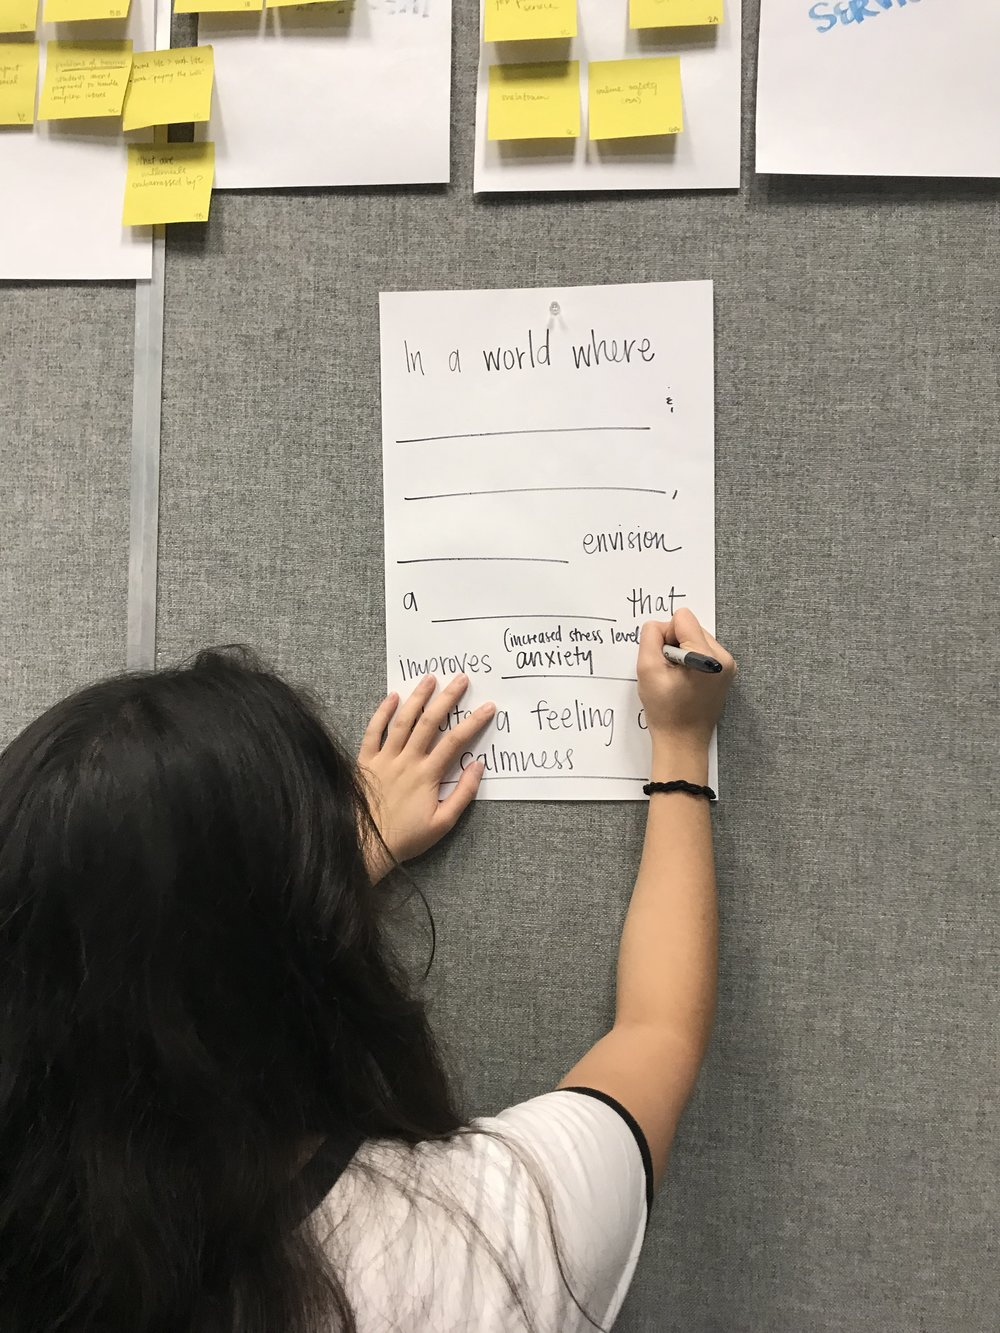 My teammate writing out what we came up with during a design friction exercise.